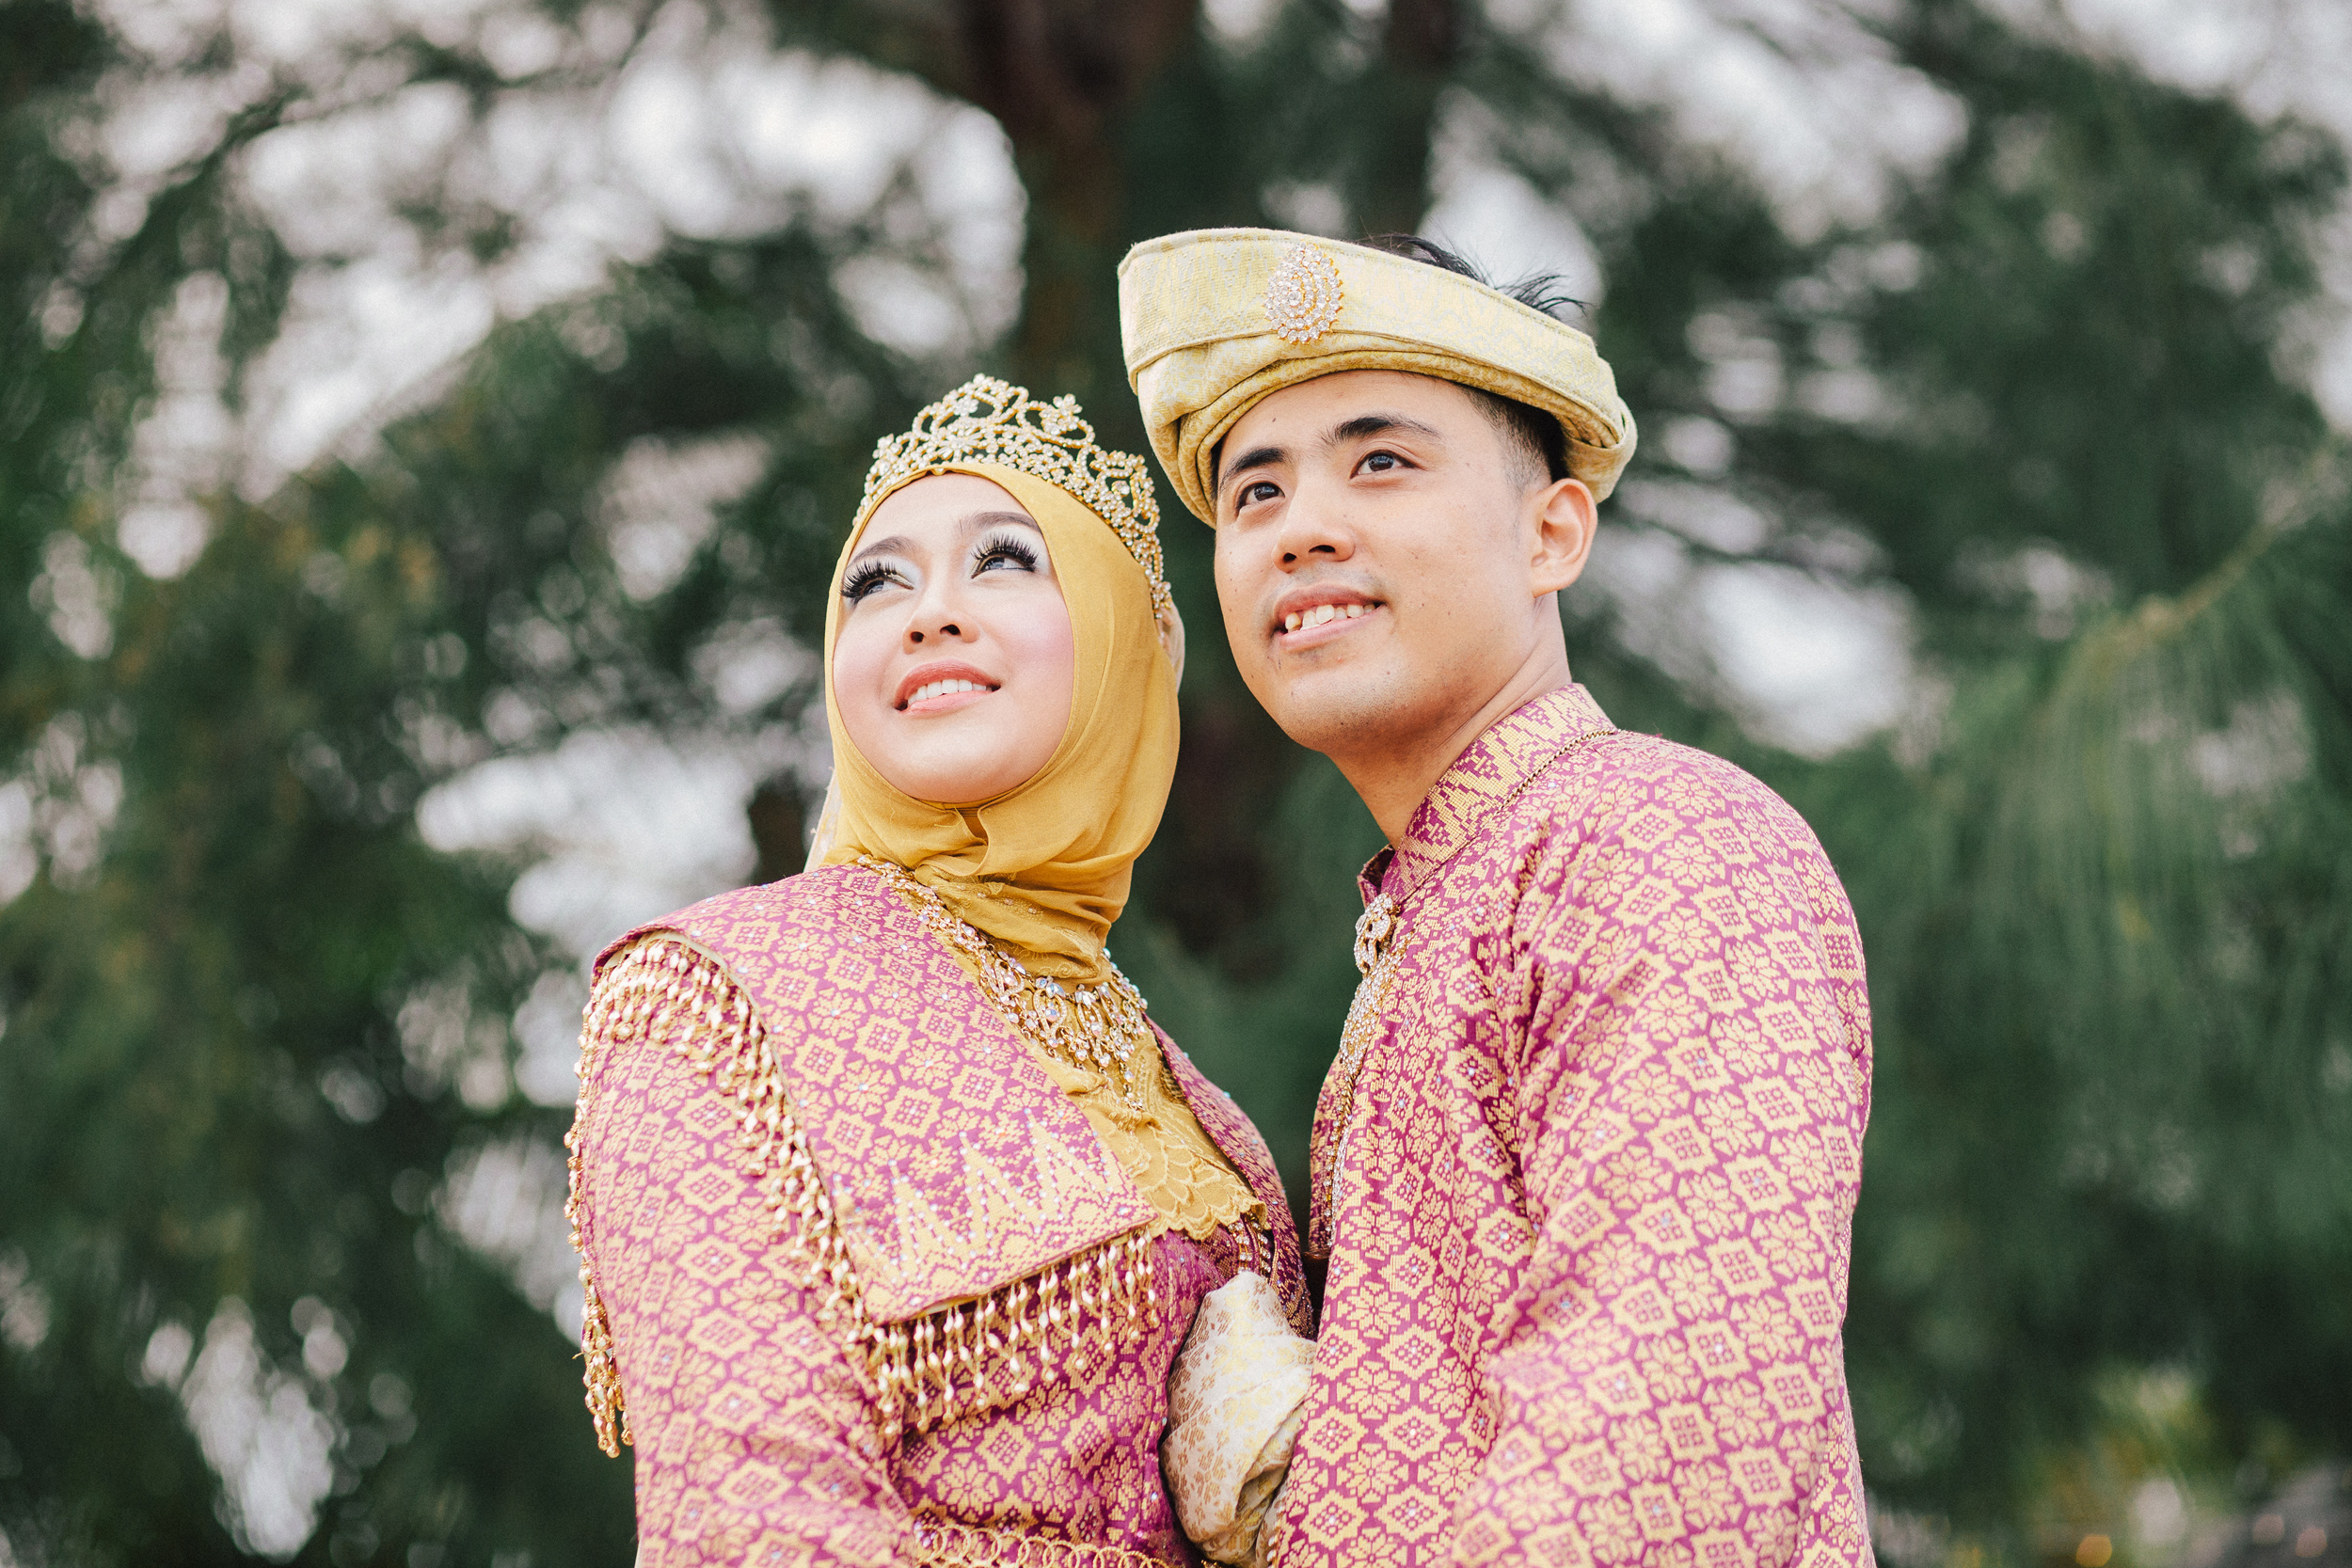 singapore-wedding-photographer-wemadethese-aisyah-helmi-54.jpg